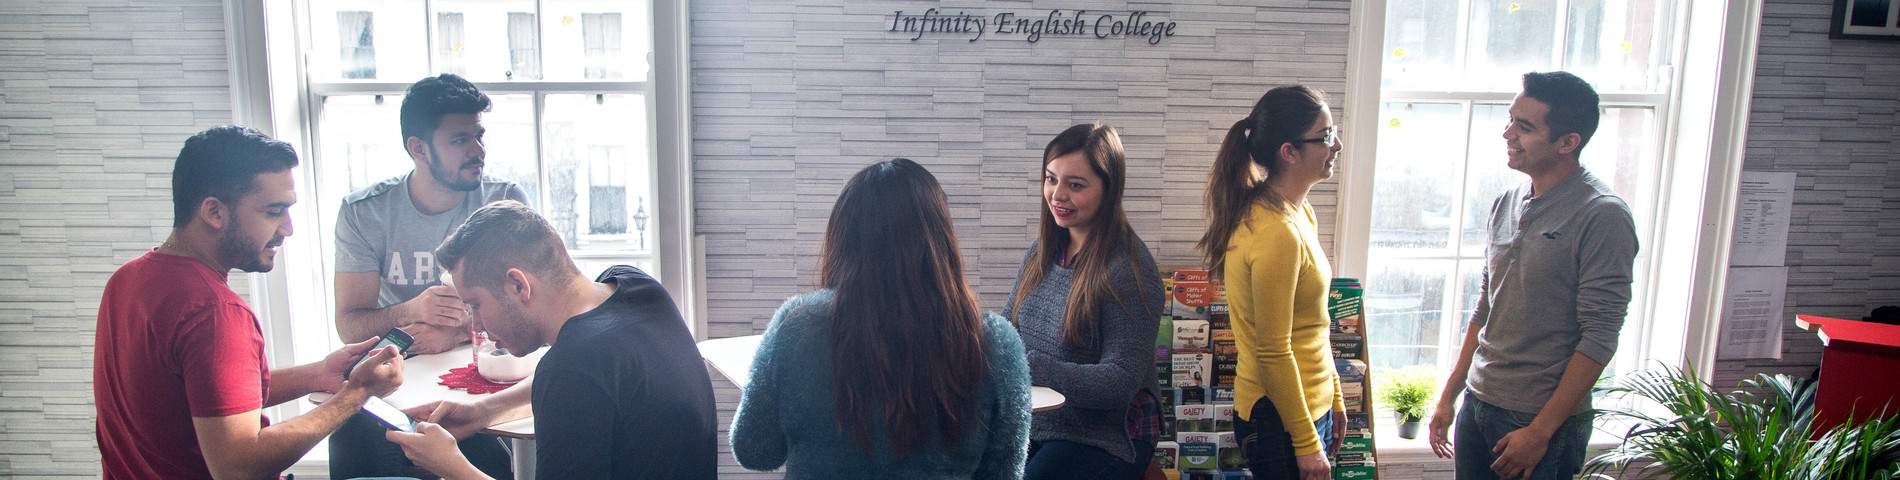 Infinity English College picture 1